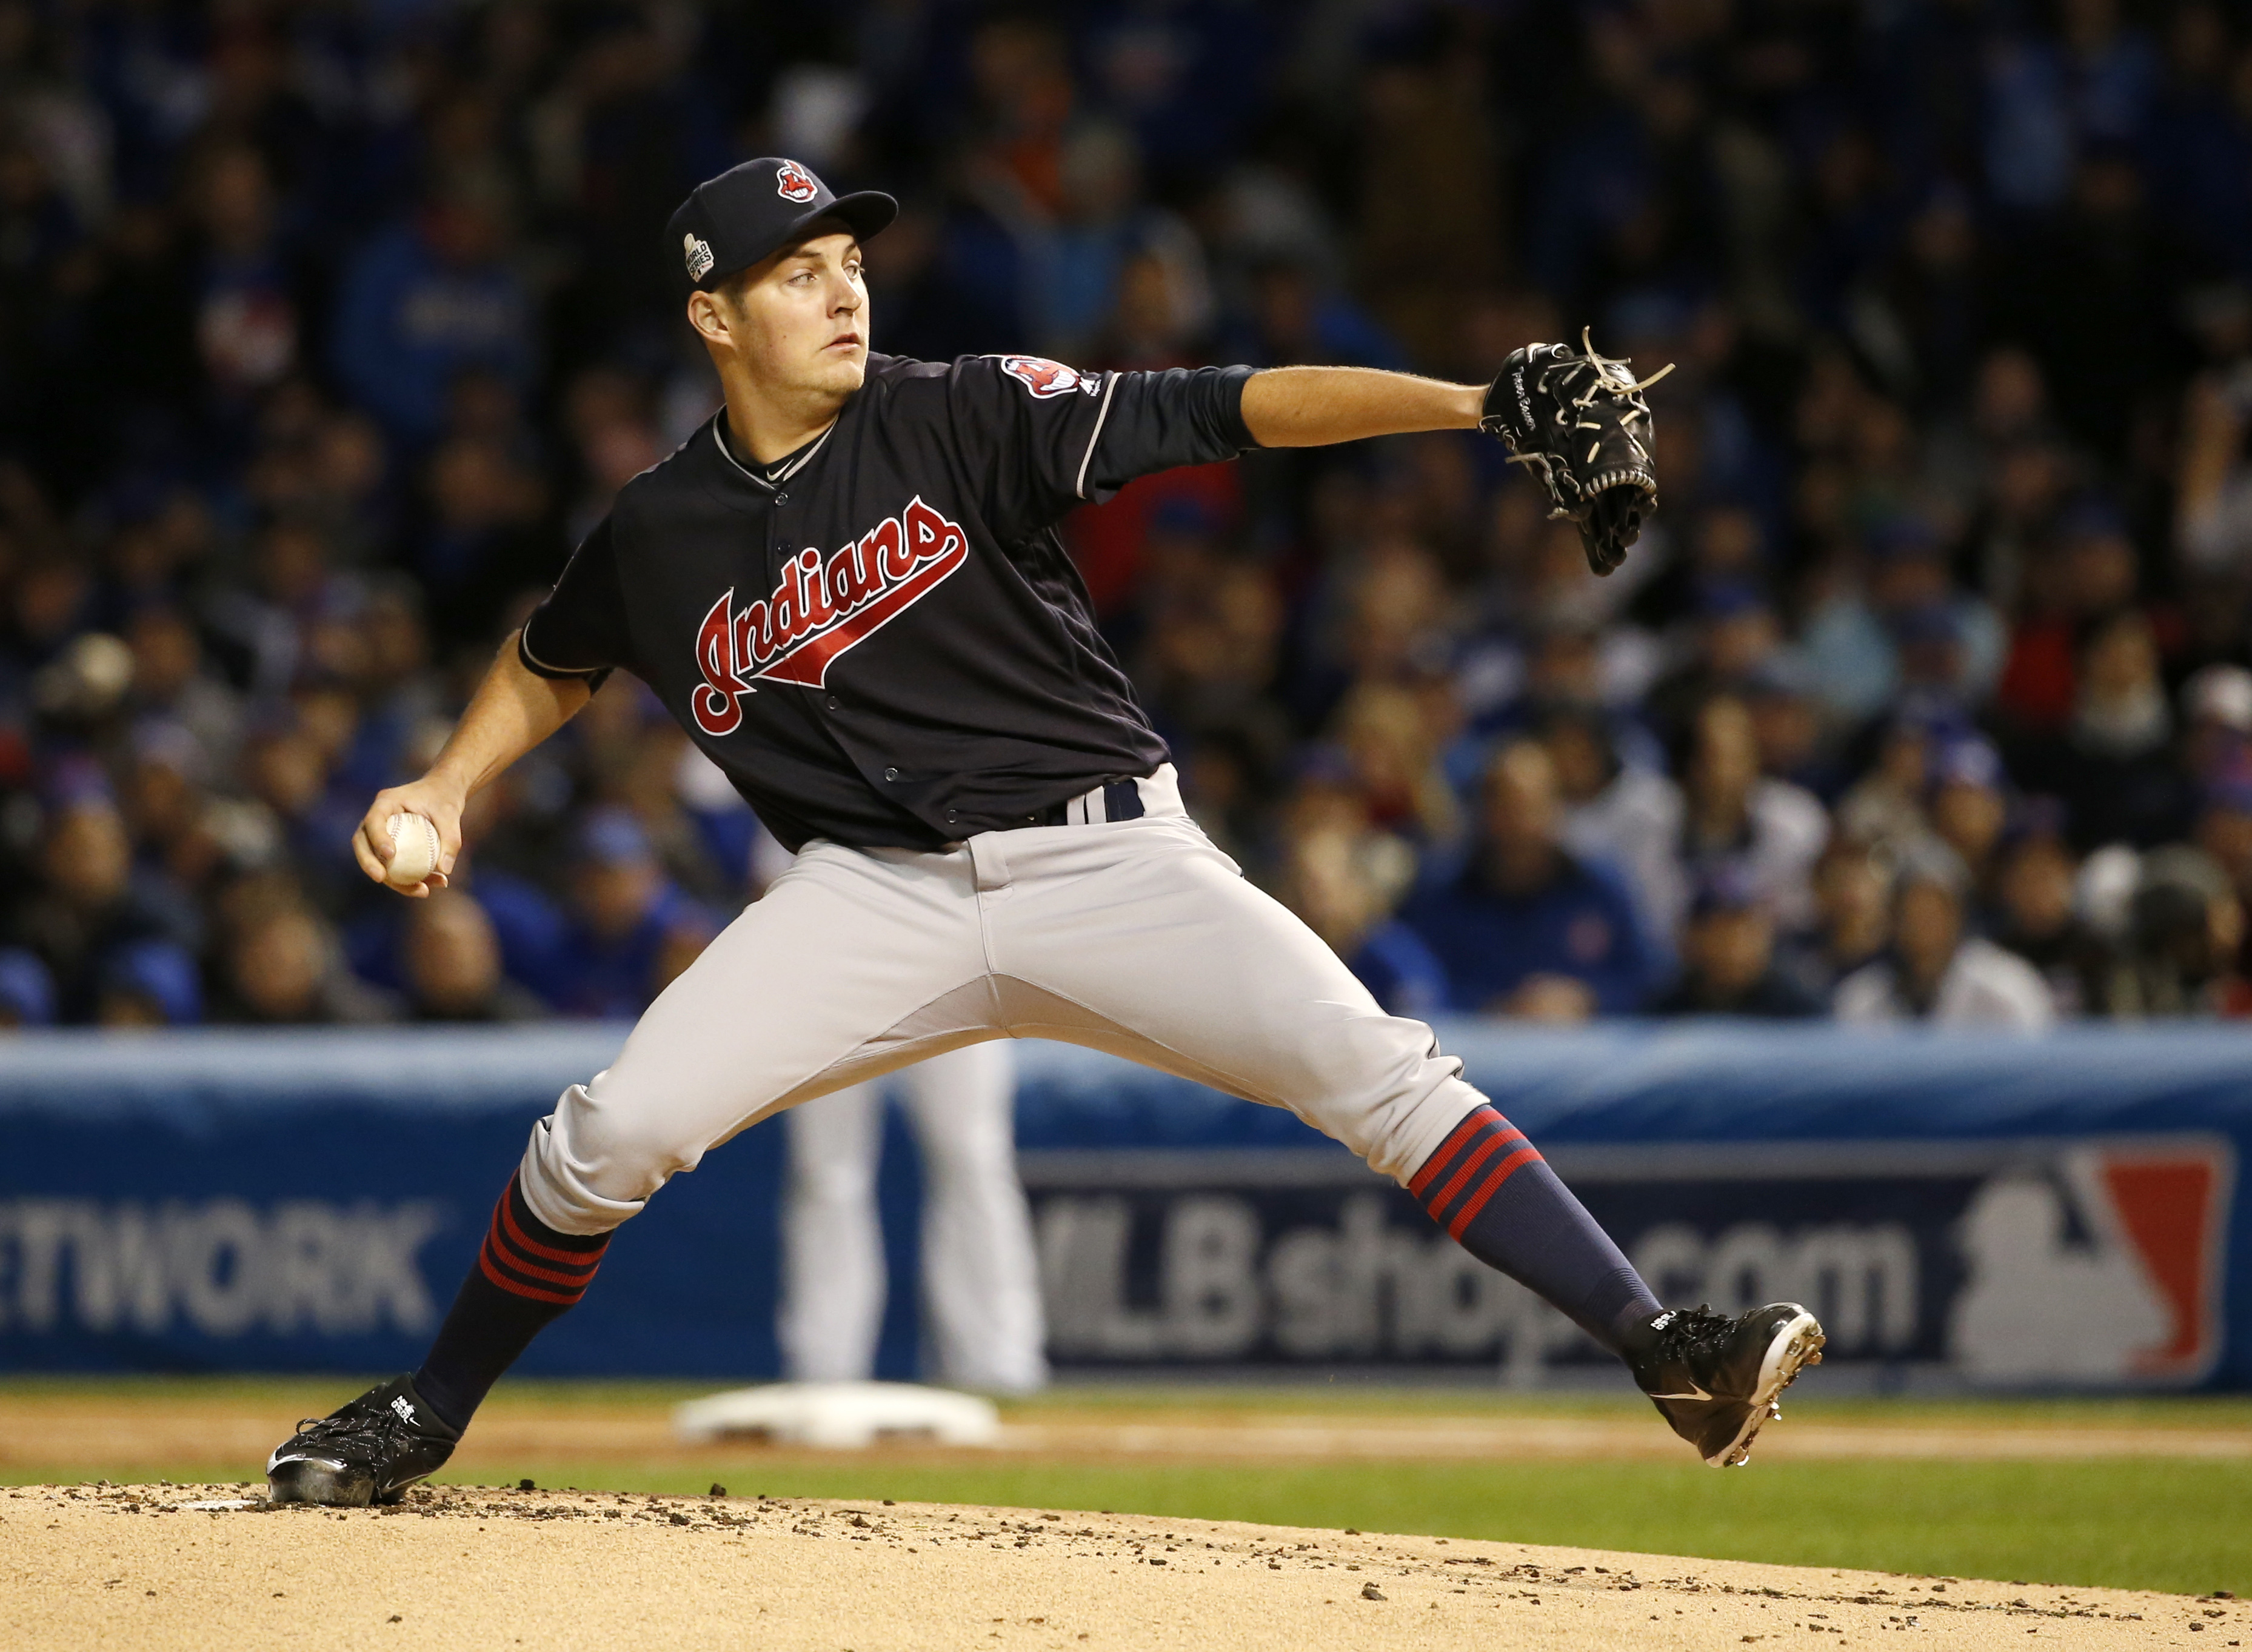 Cleveland Indians starting pitcher Trevor Bauer throws during the first inning of Game 5 of the Major League Baseball World Series against the Chicago Cubs, Sunday, Oct. 30, 2016, in Chicago. (AP Photo/Nam Y. Huh)